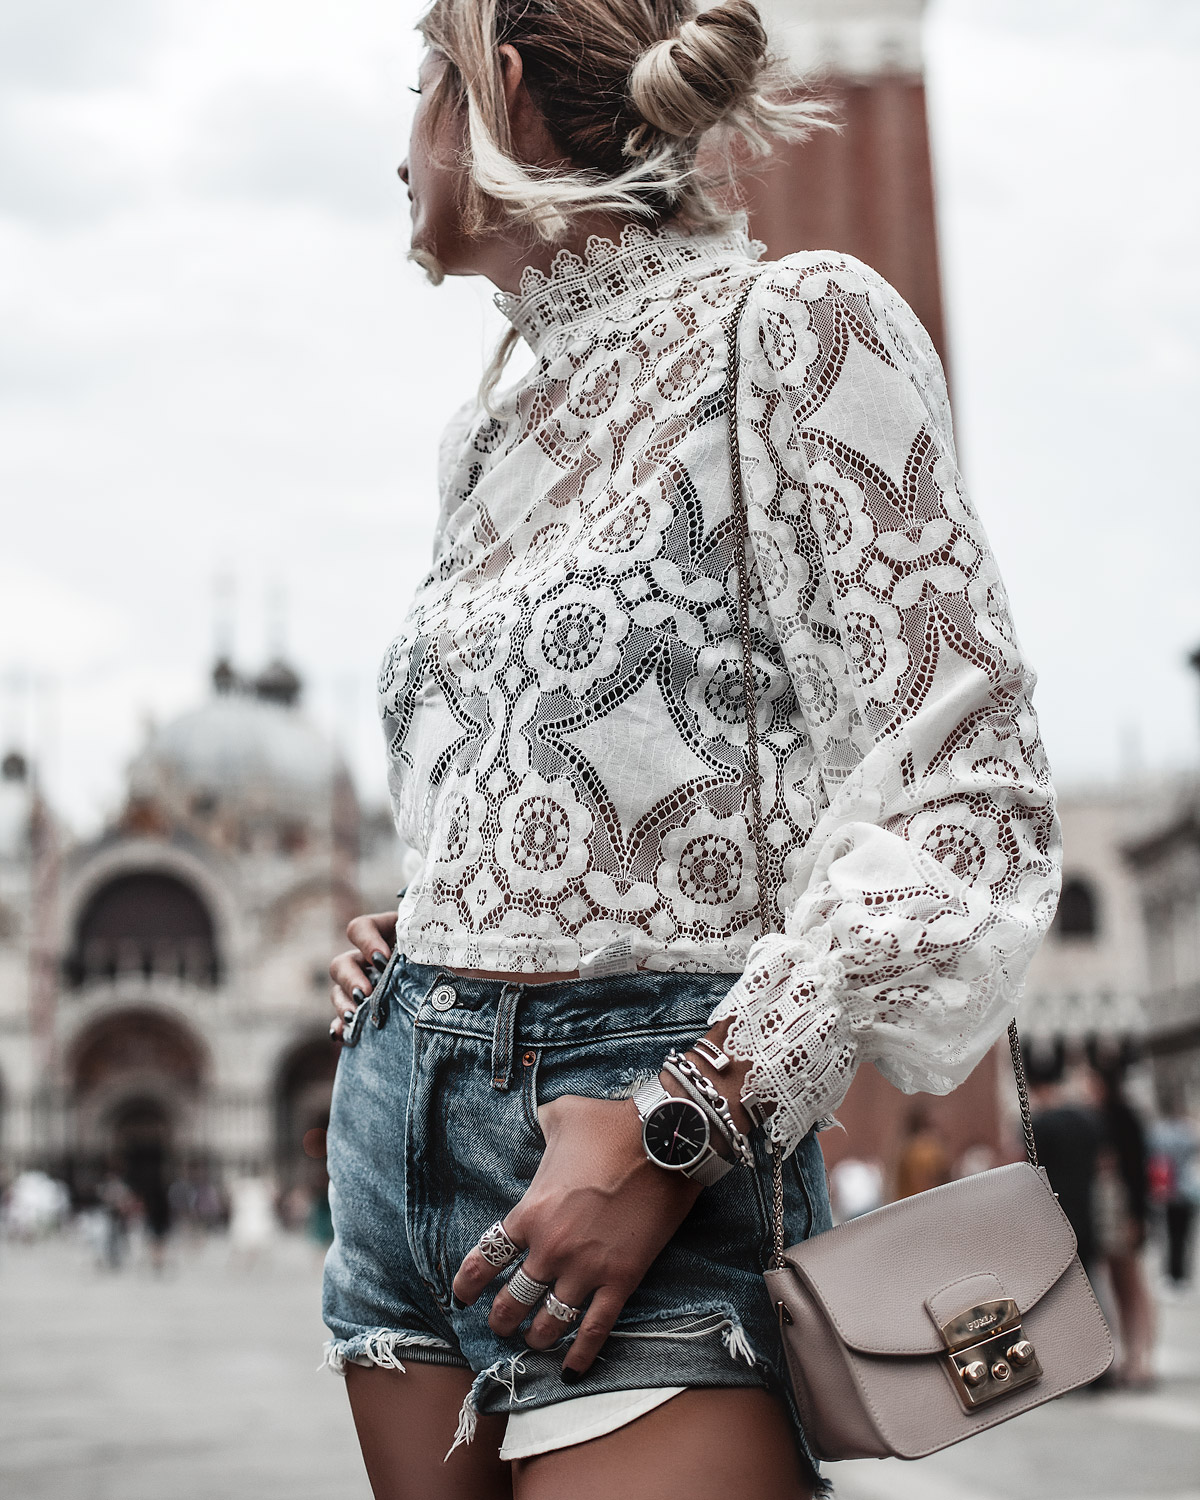 Trip to Venice wearing white lace top jeans shorts beige bag and silver jewellery